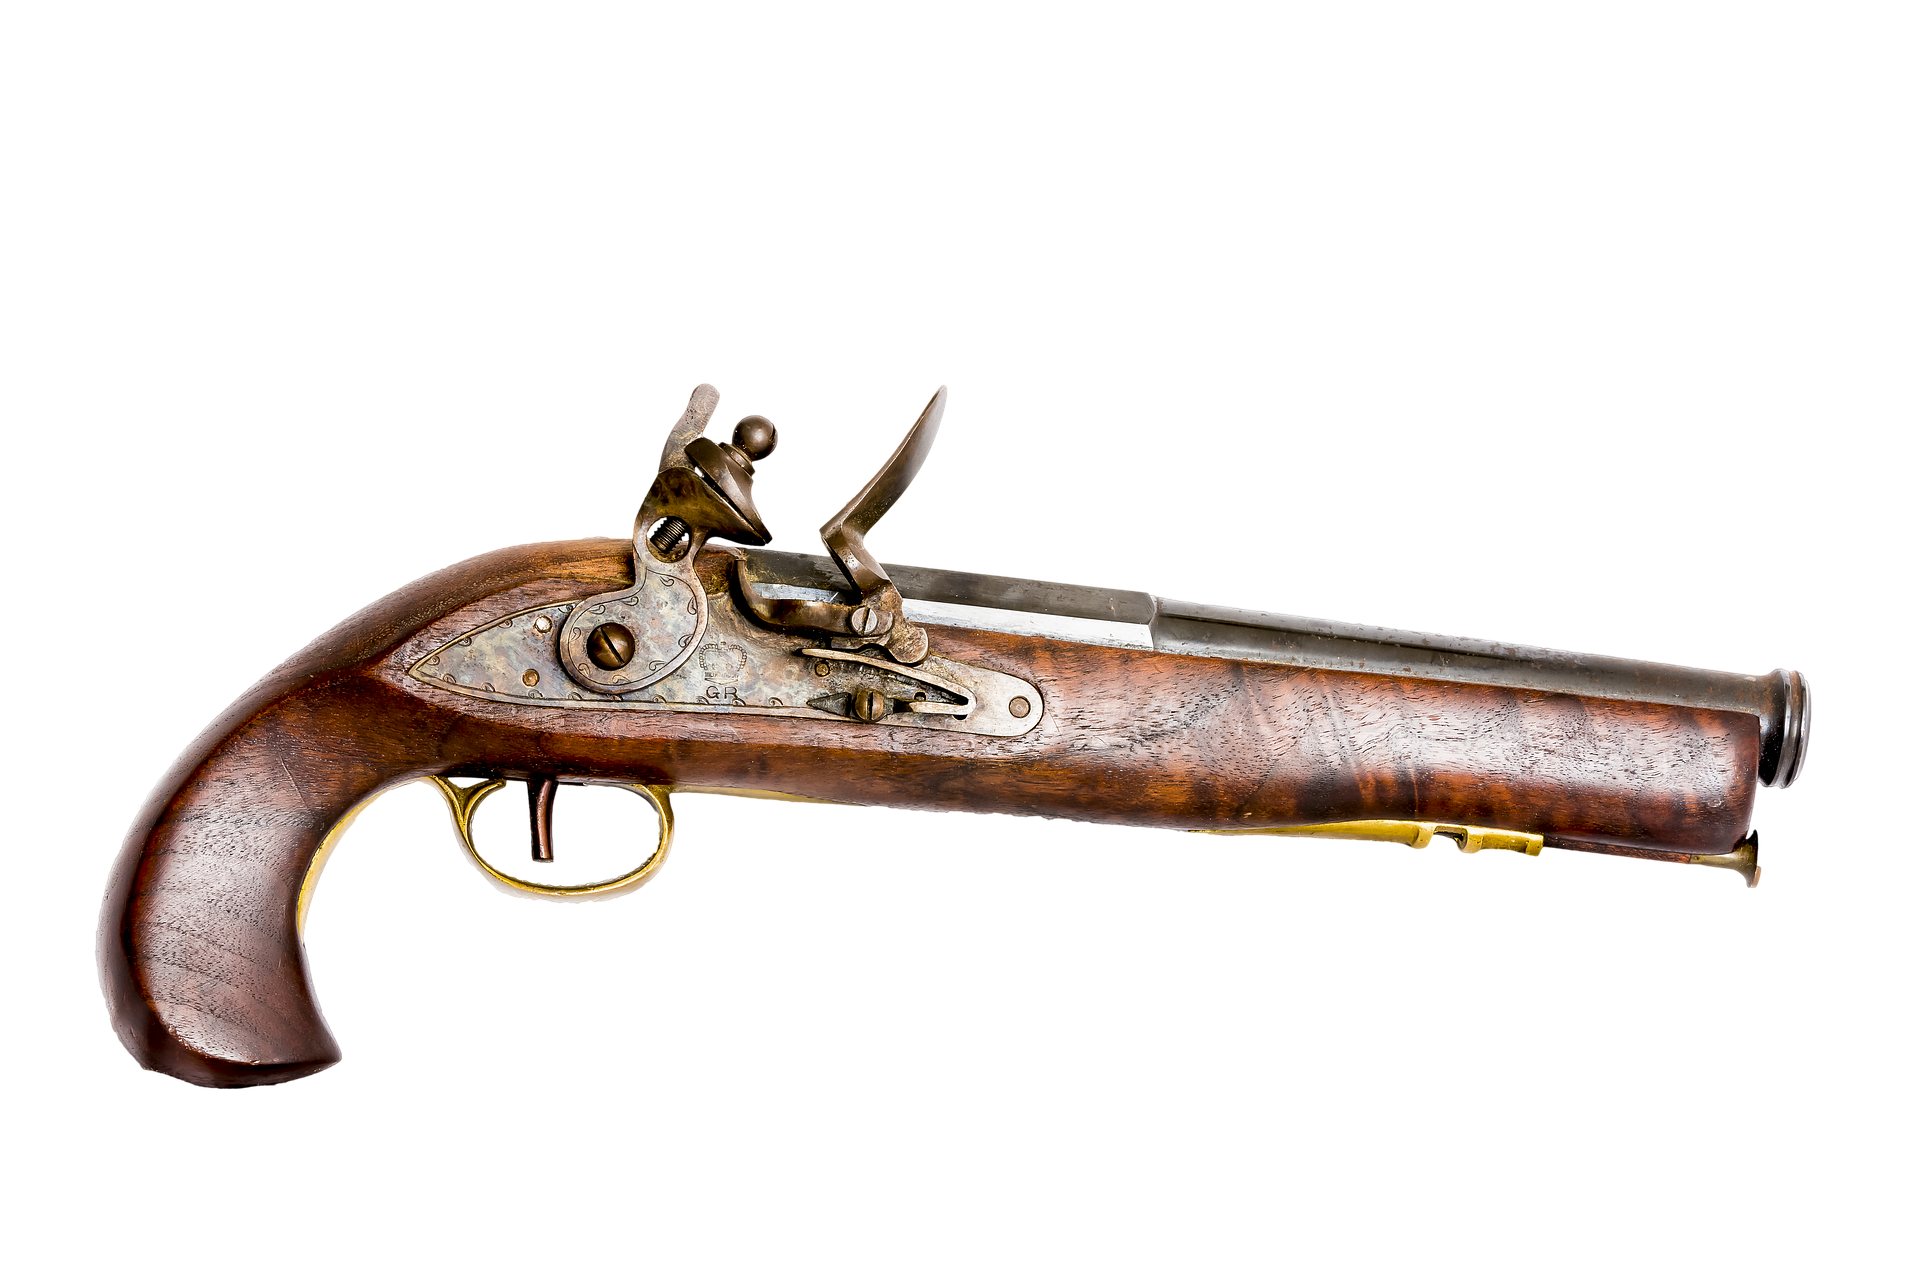 Antique gun auctions in texas